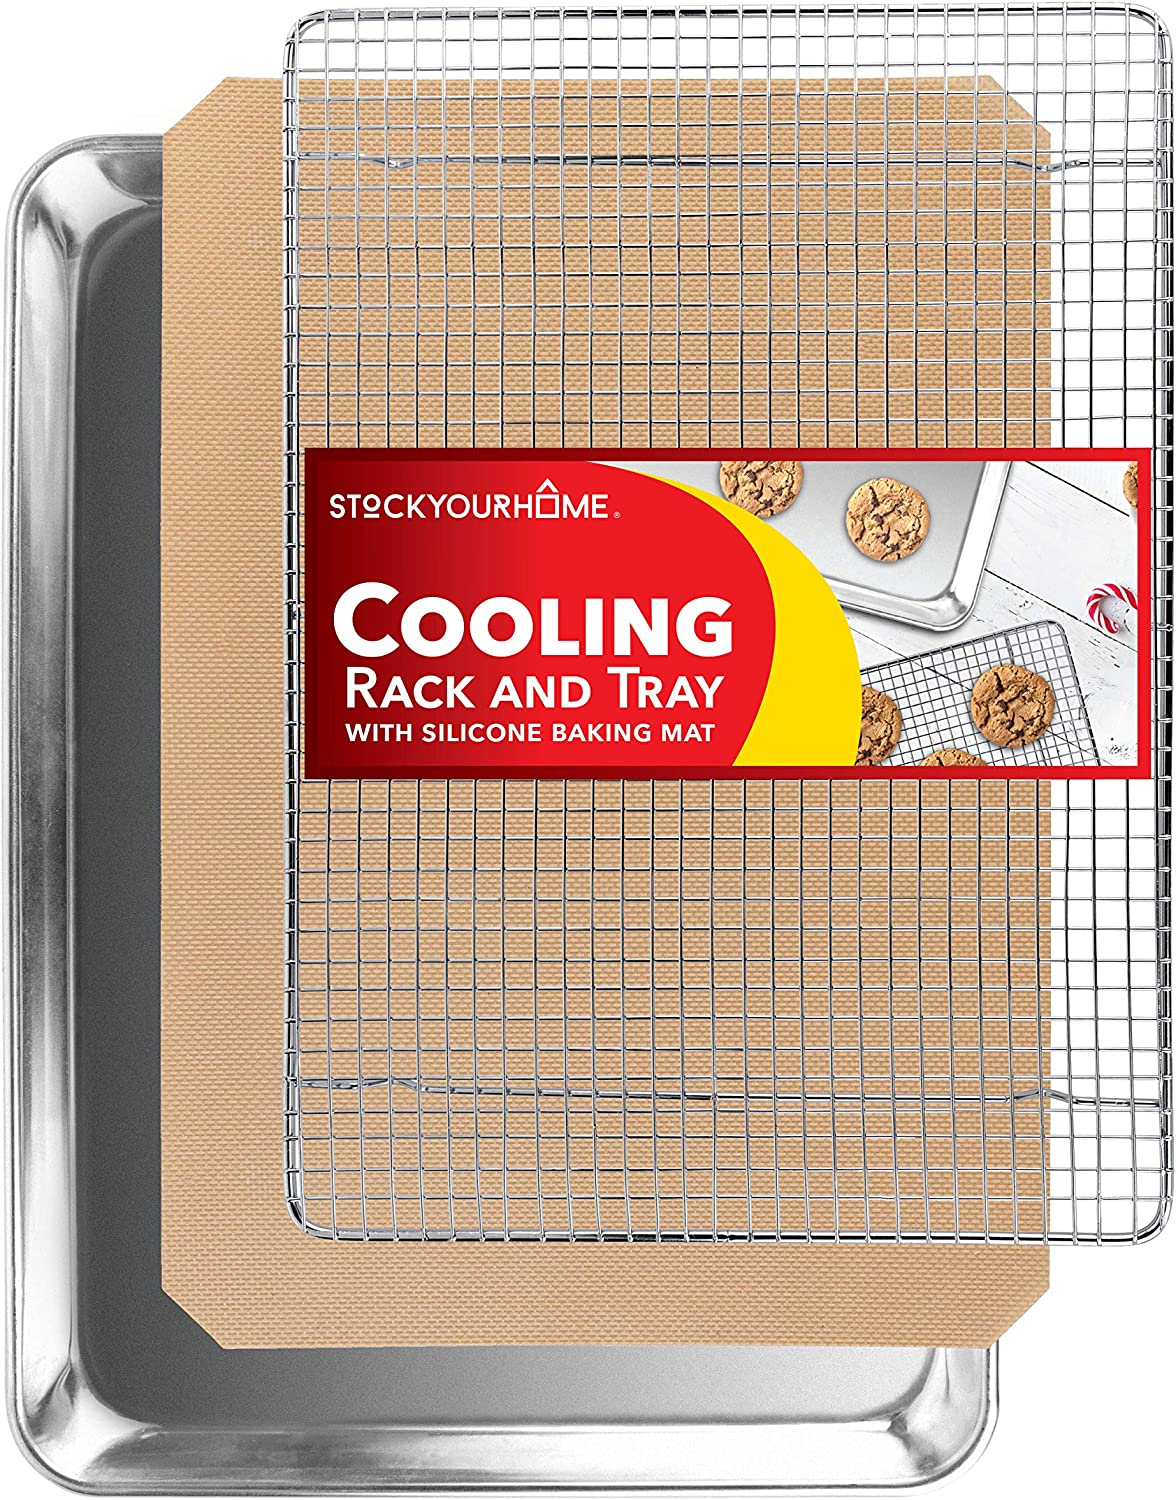 Stock Your Home Aluminum Sheet Pan Cooling Rack and Silicone Mat 3 Piece Baking Set – Stainless Steel Cooling Rack for Baking and Cooking